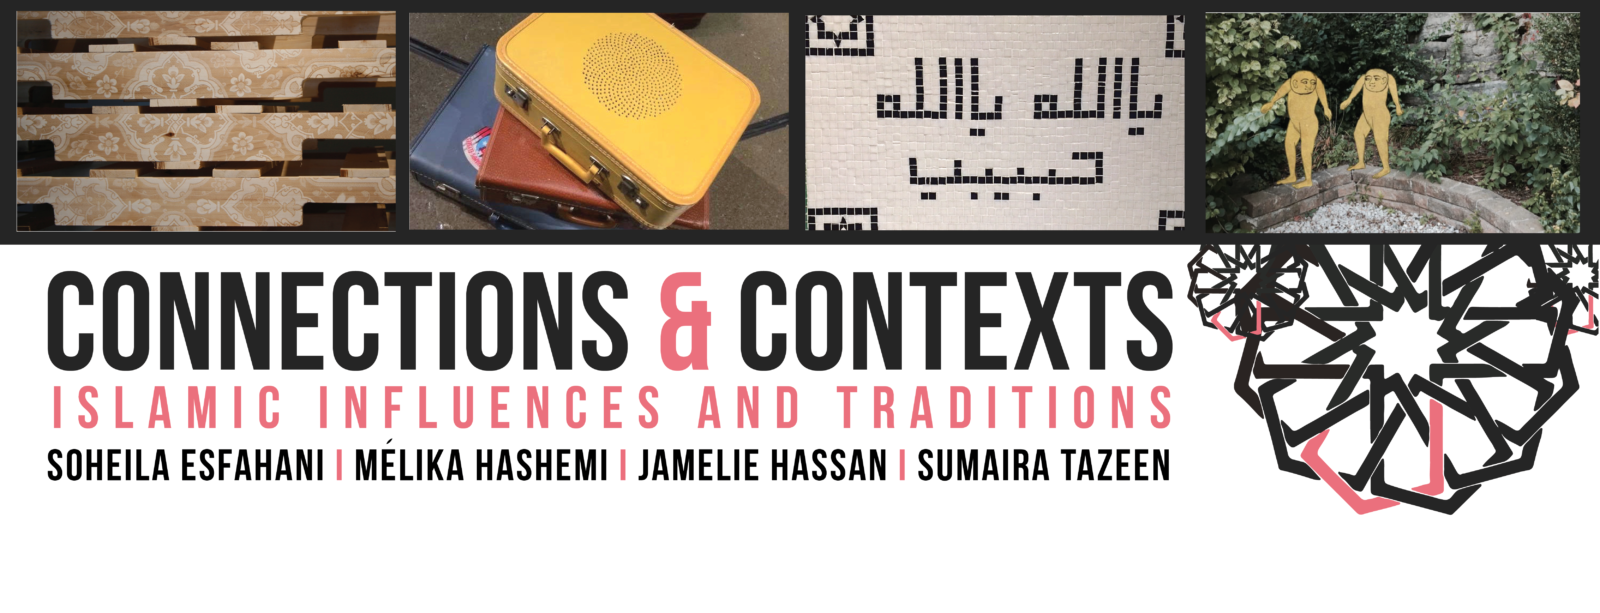 Connections & Contexts